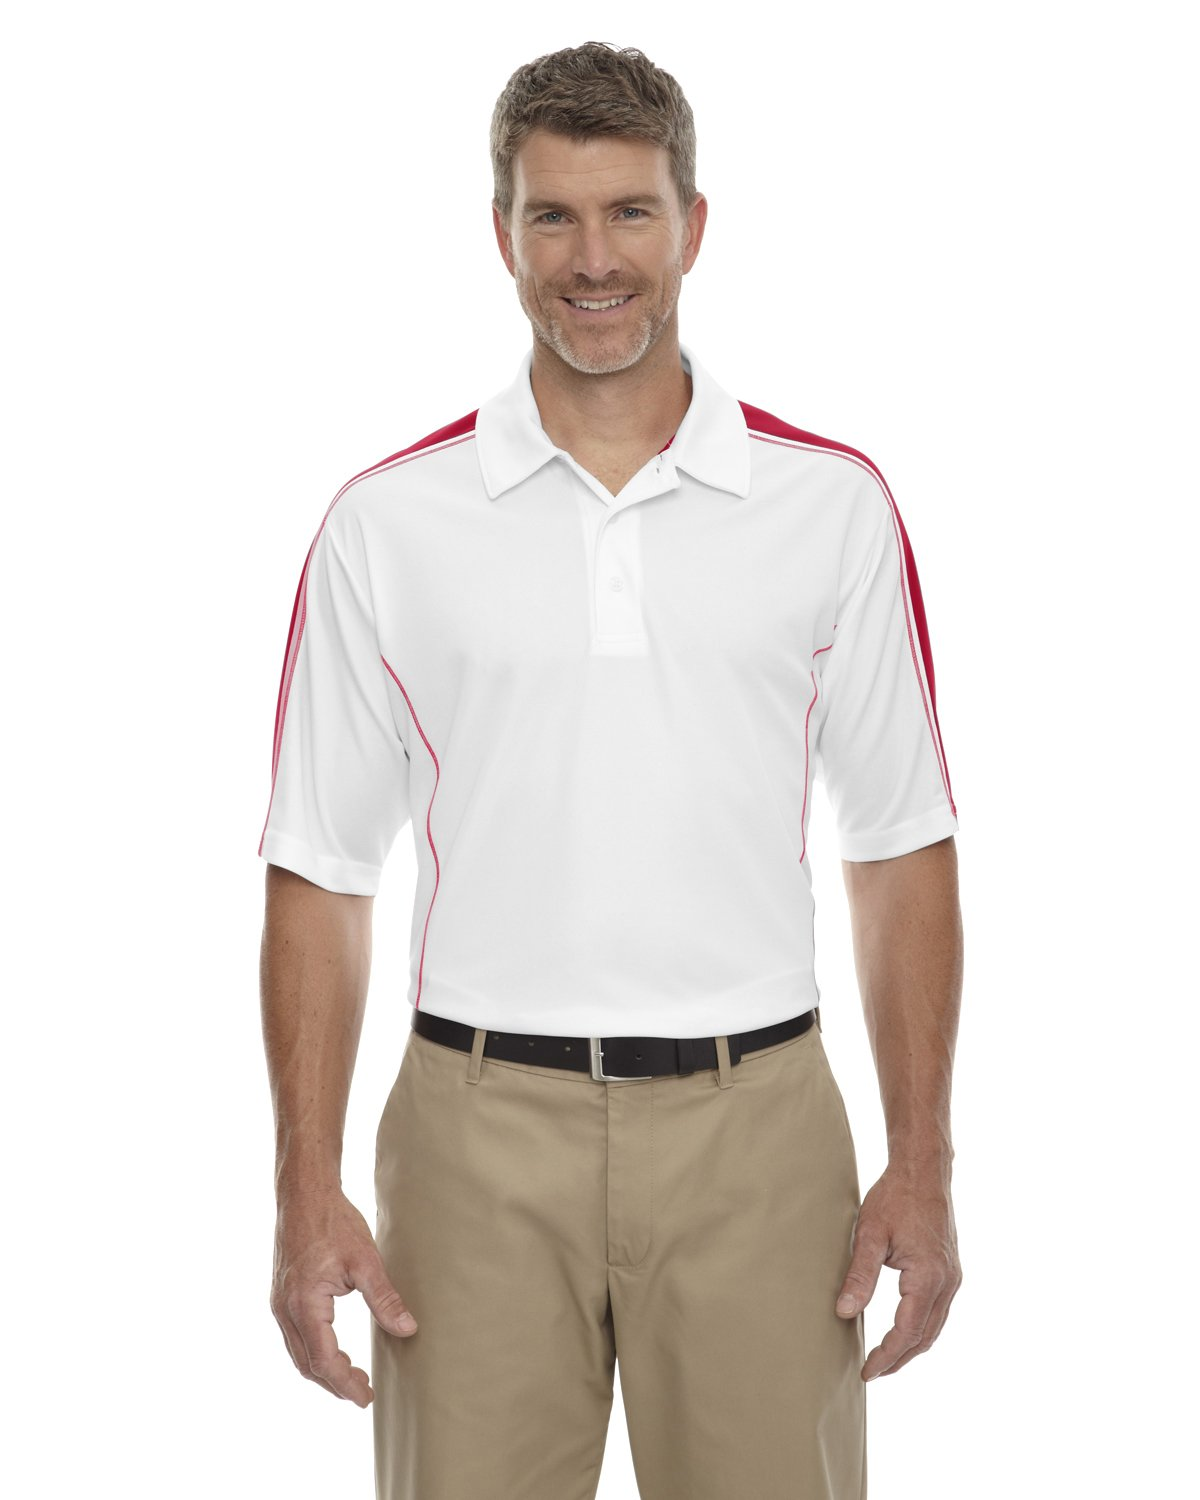 Ash City Mens Eperformance Extreme Pique Color Block Polo Shirt (XXXXX-Large, White/Classic Red) by Ash City Apparel